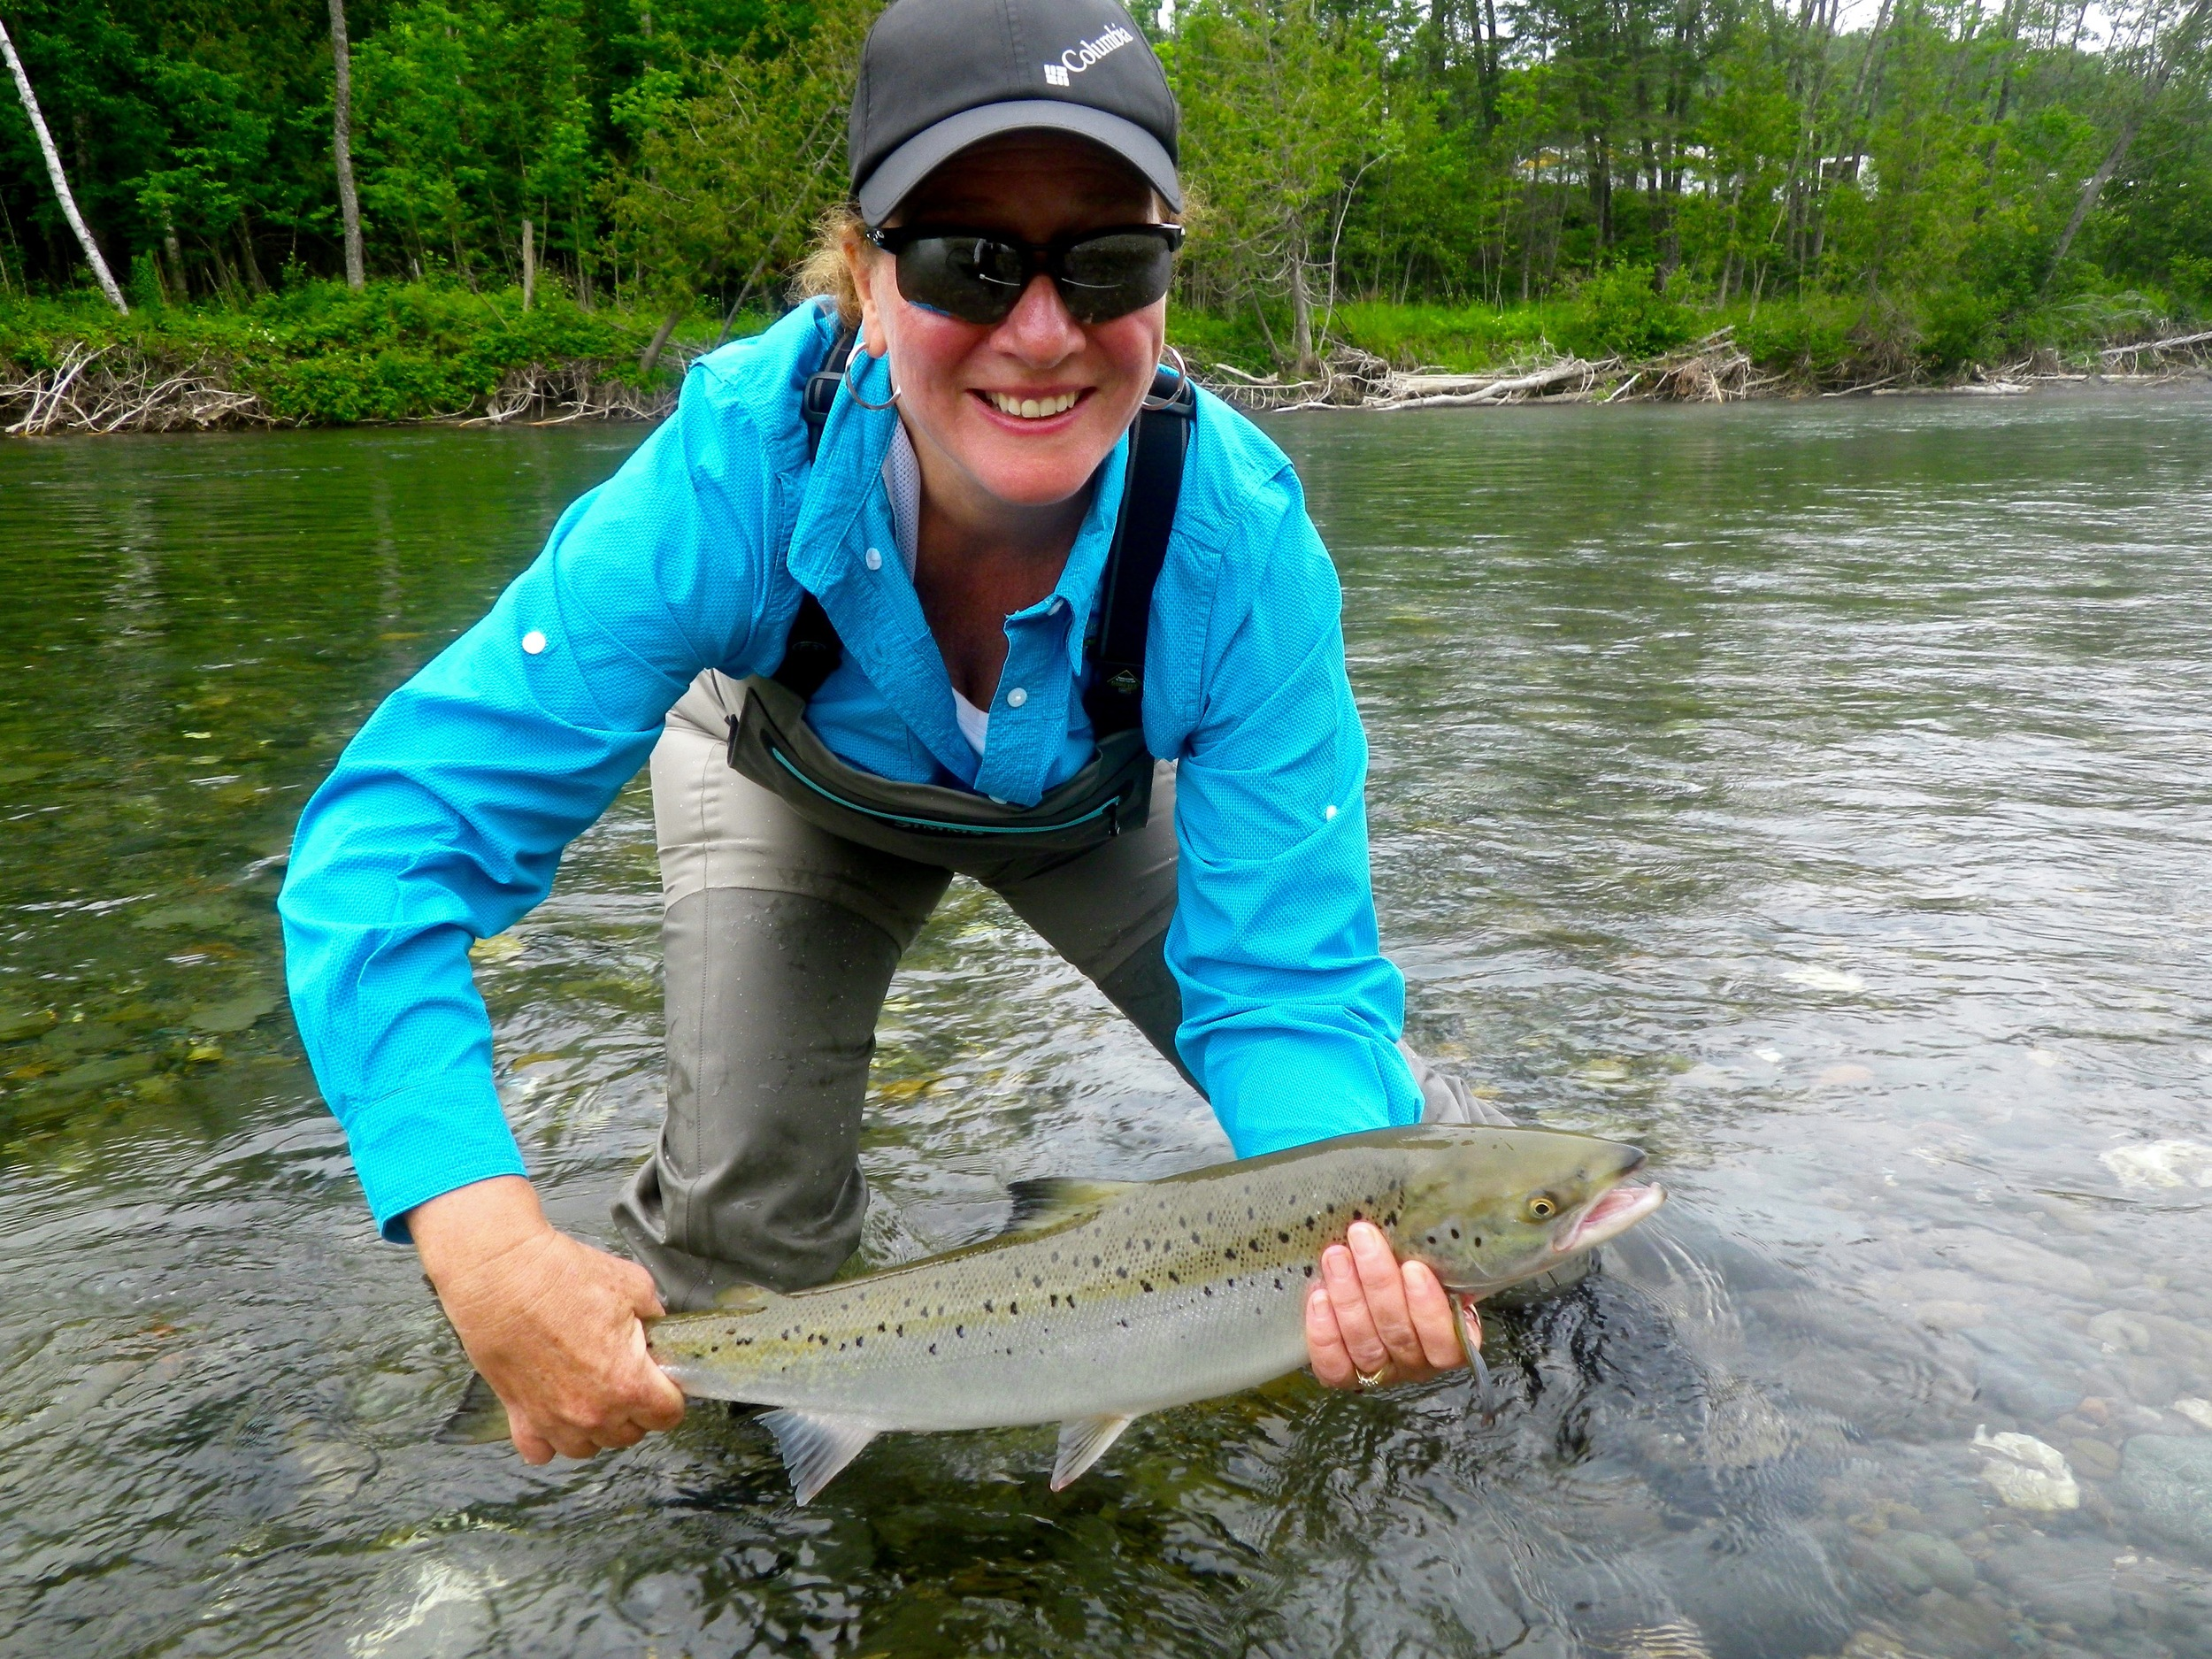 Françoise Duchense with her first salmon of the year, Nice fish Francoise!